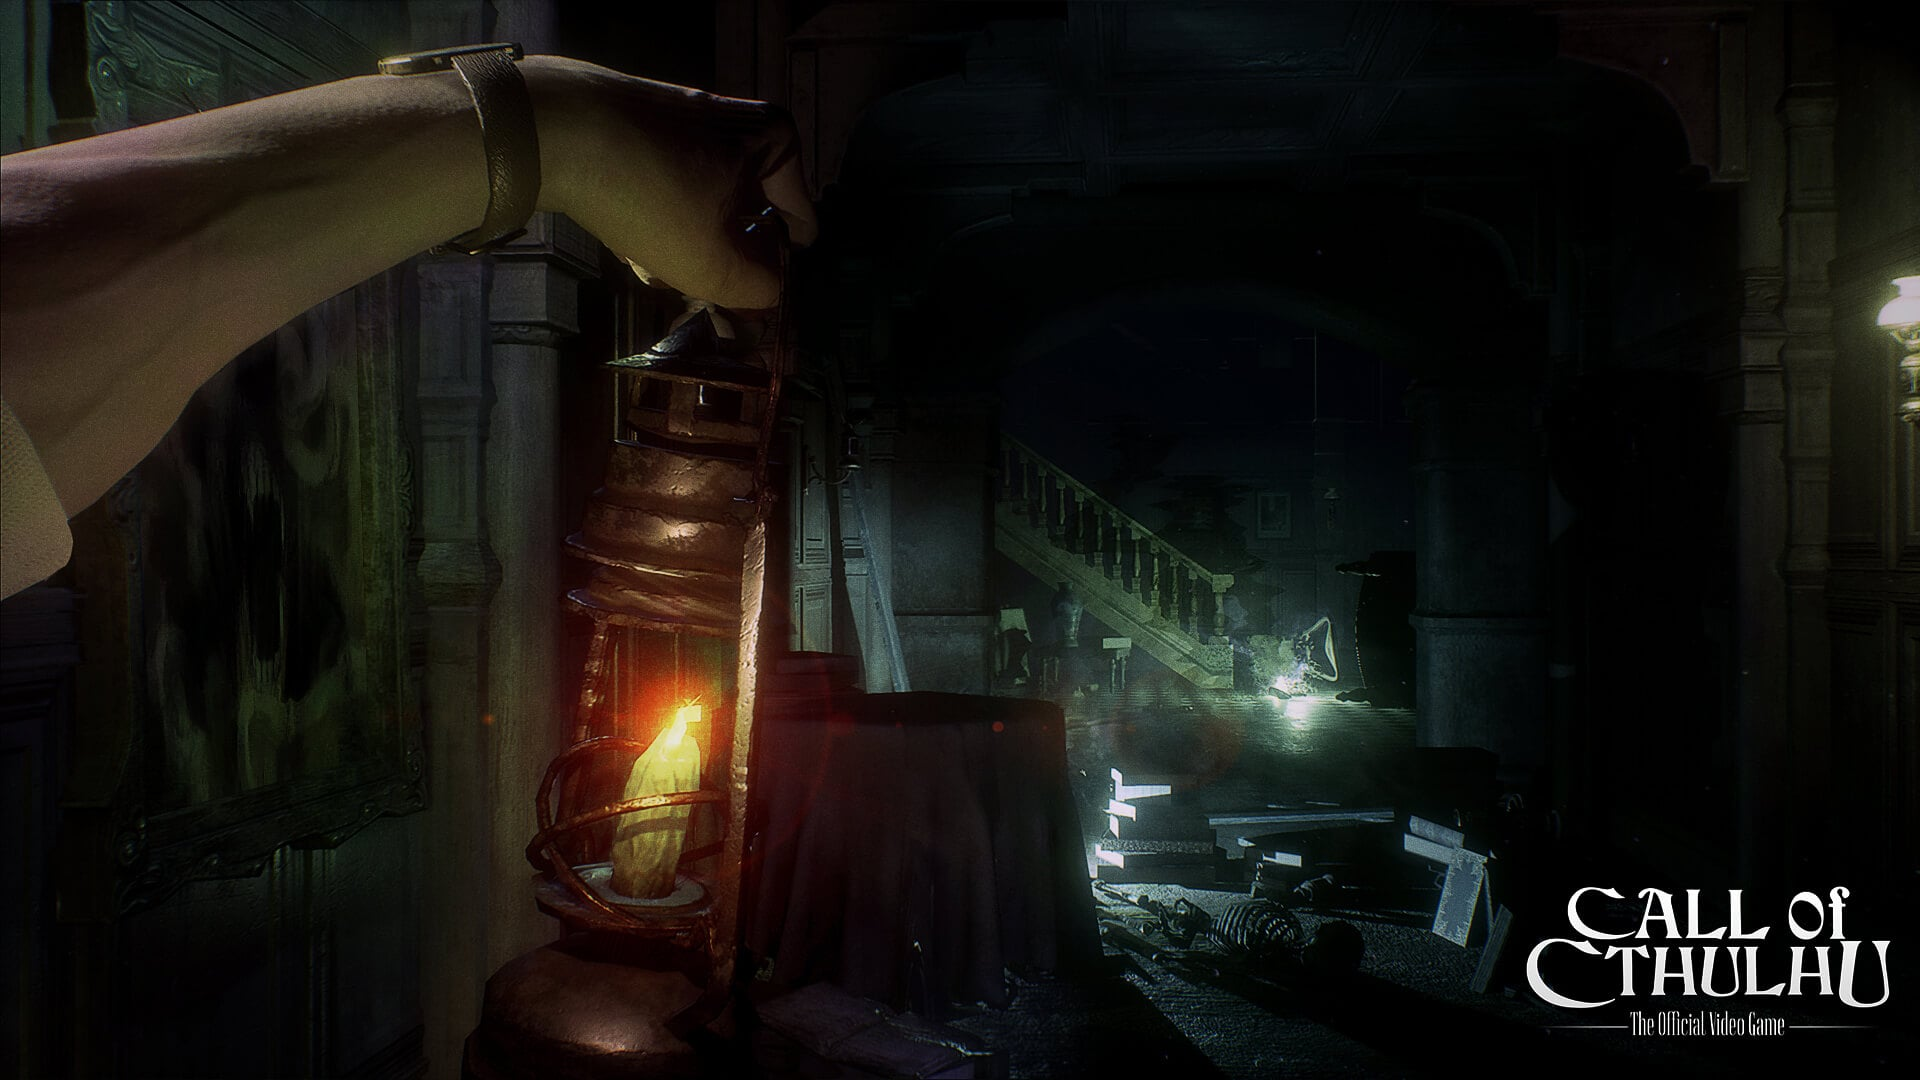 Download Call of Cthulhu Za darmo